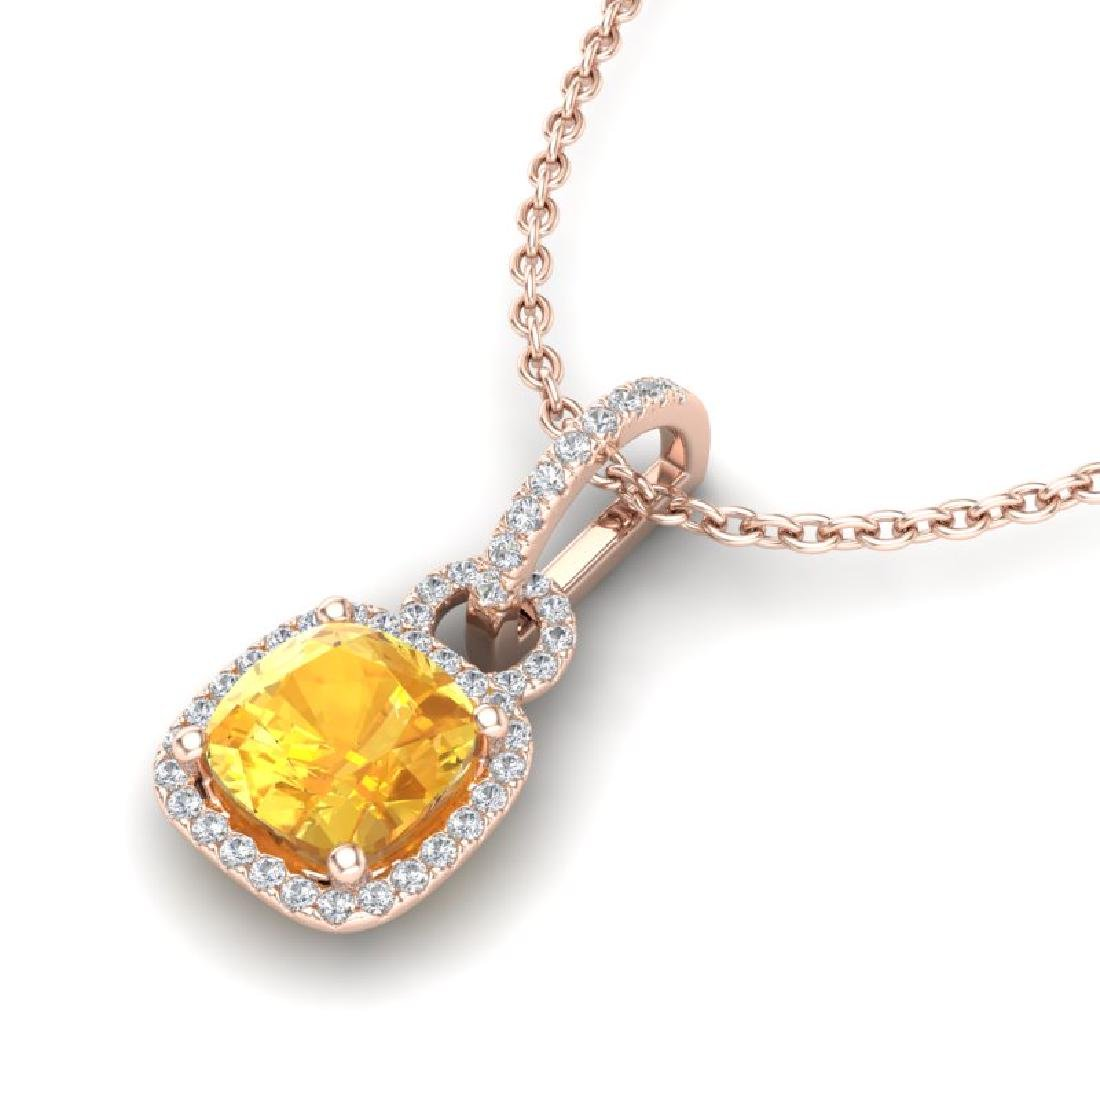 3.50 CTW Citrine & Micro VS/SI Diamond Necklace 14K